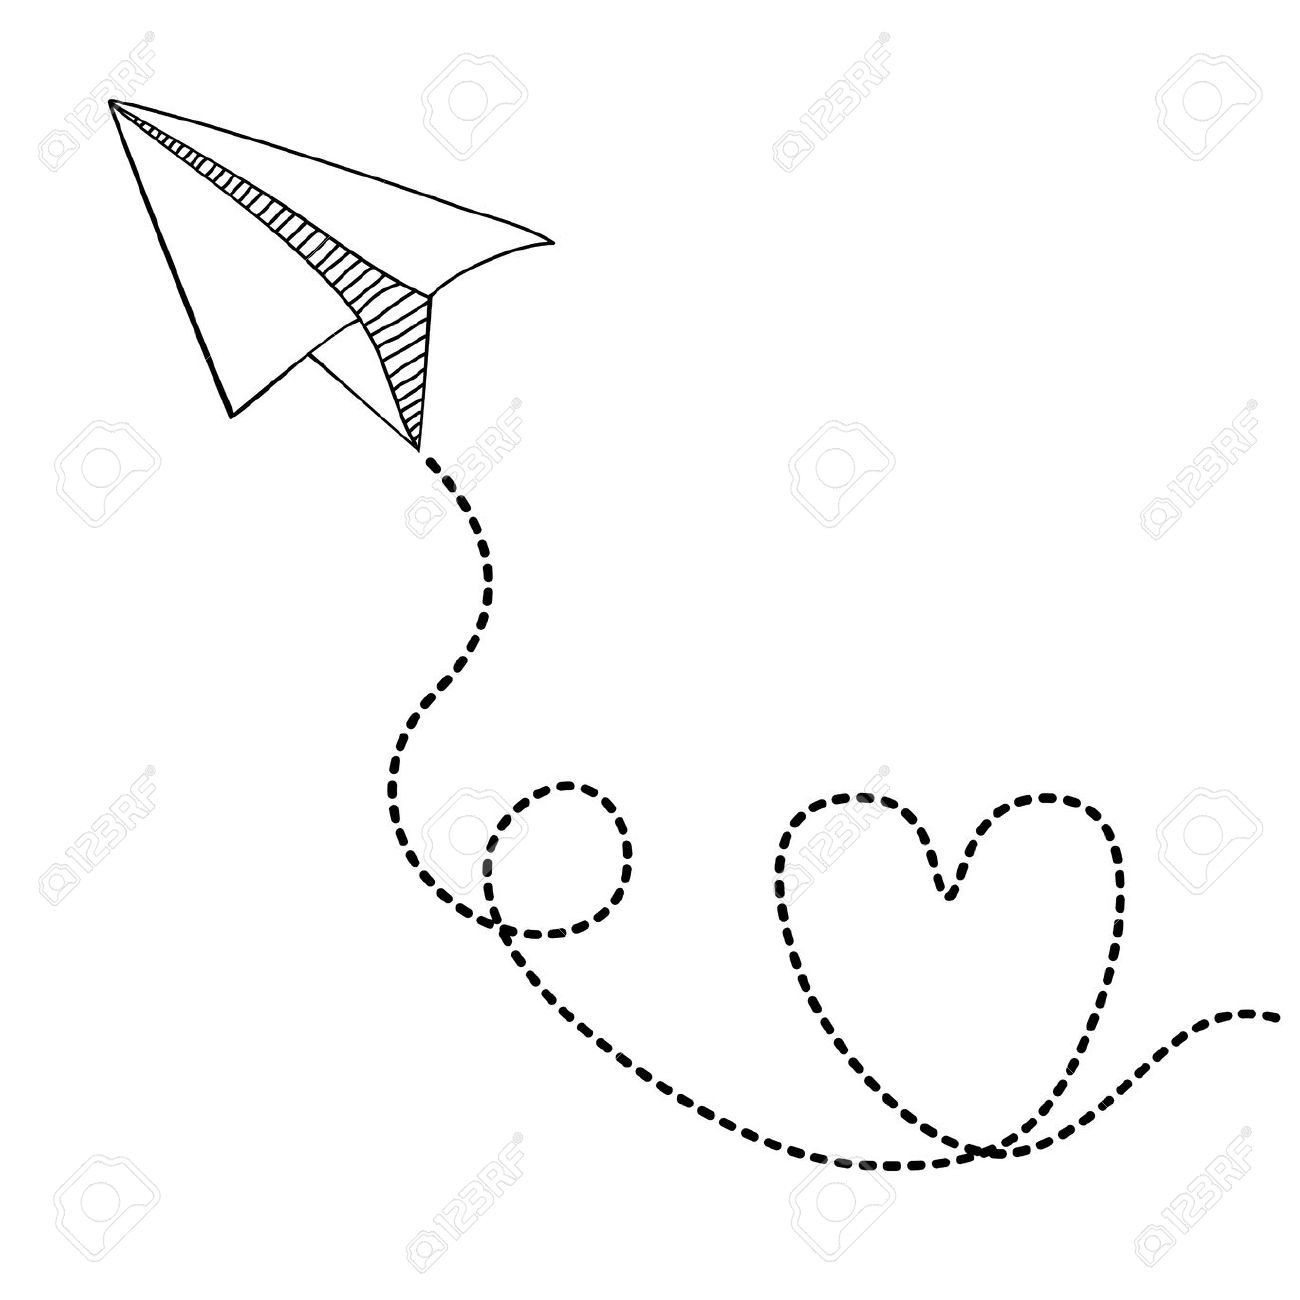 Line Drawing Jet : Paper plane drawing tumblr airplanes drawings